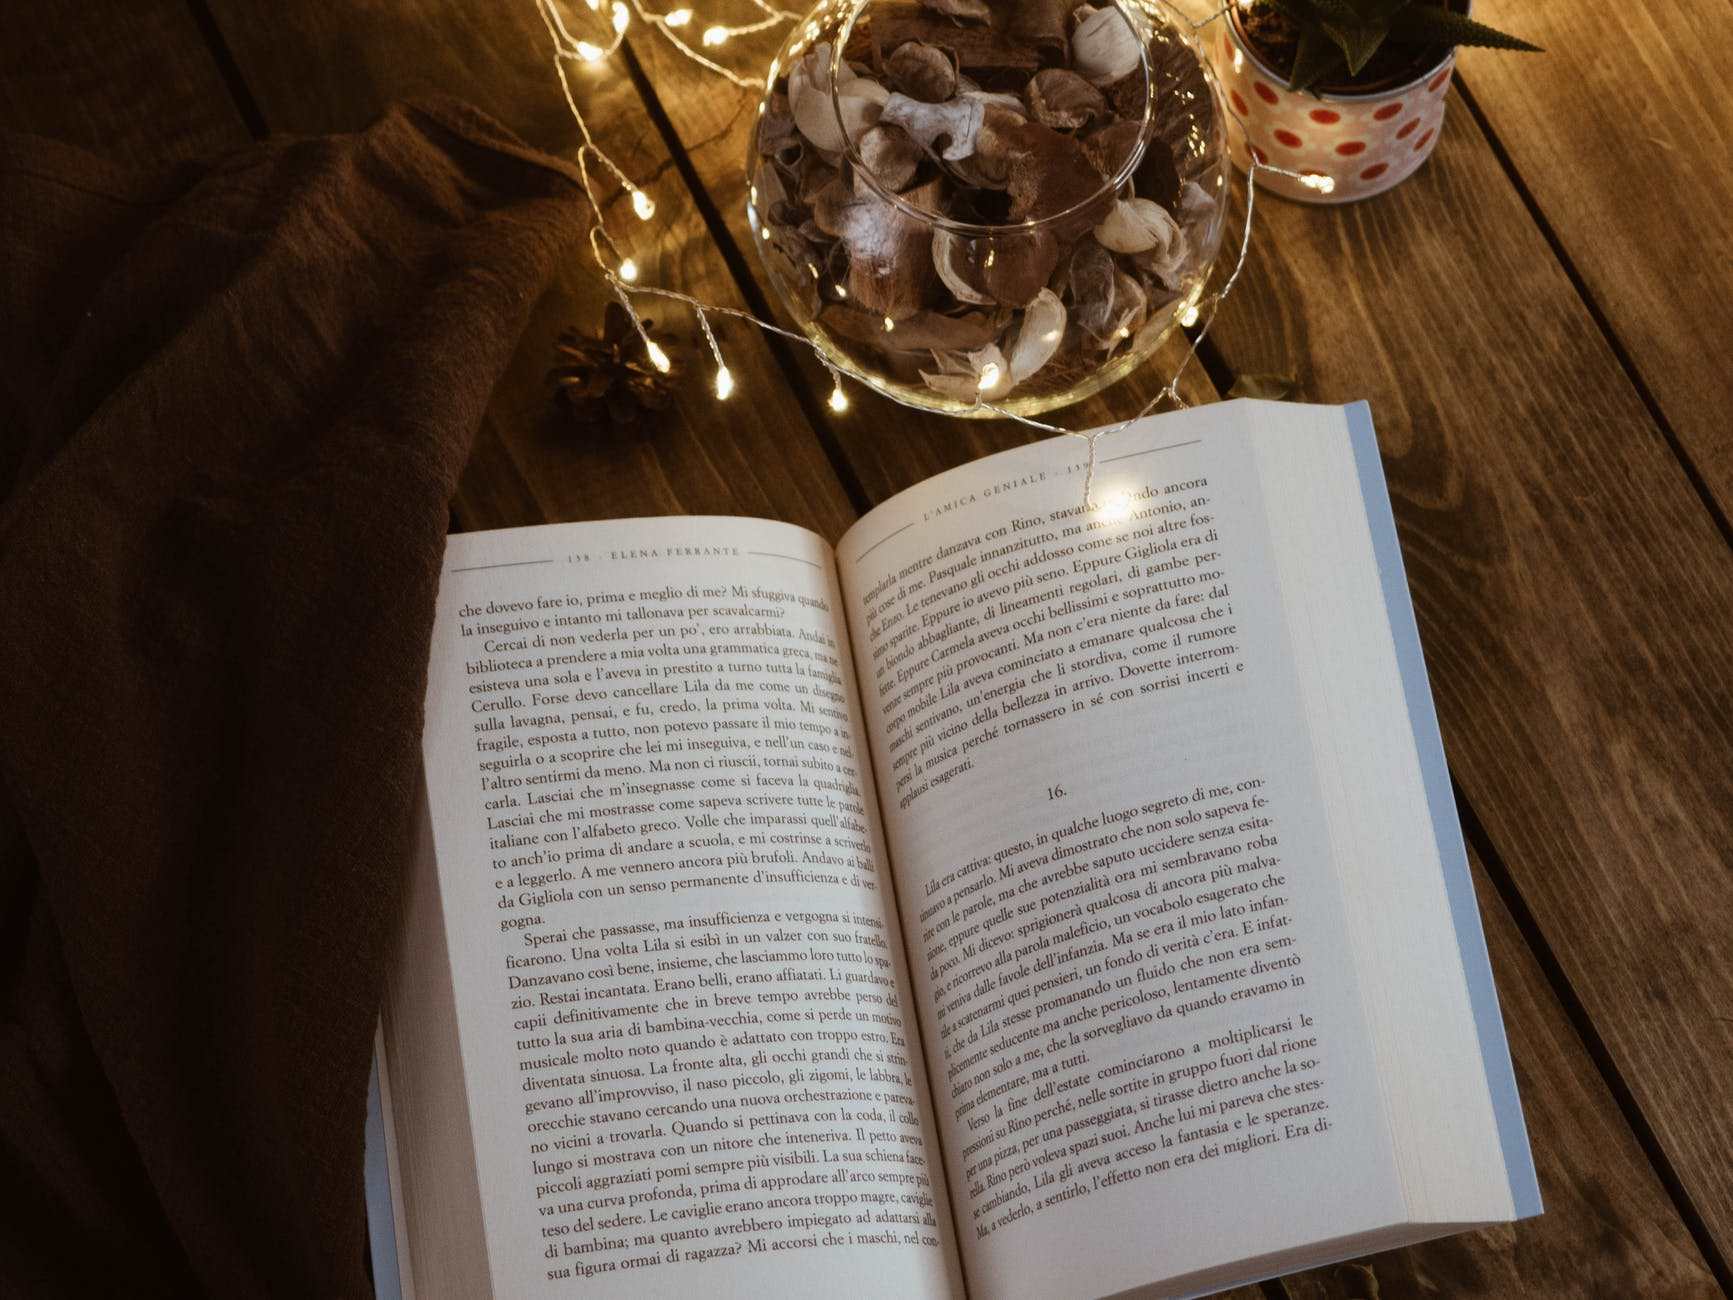 open book and fairy lights on wooden surface